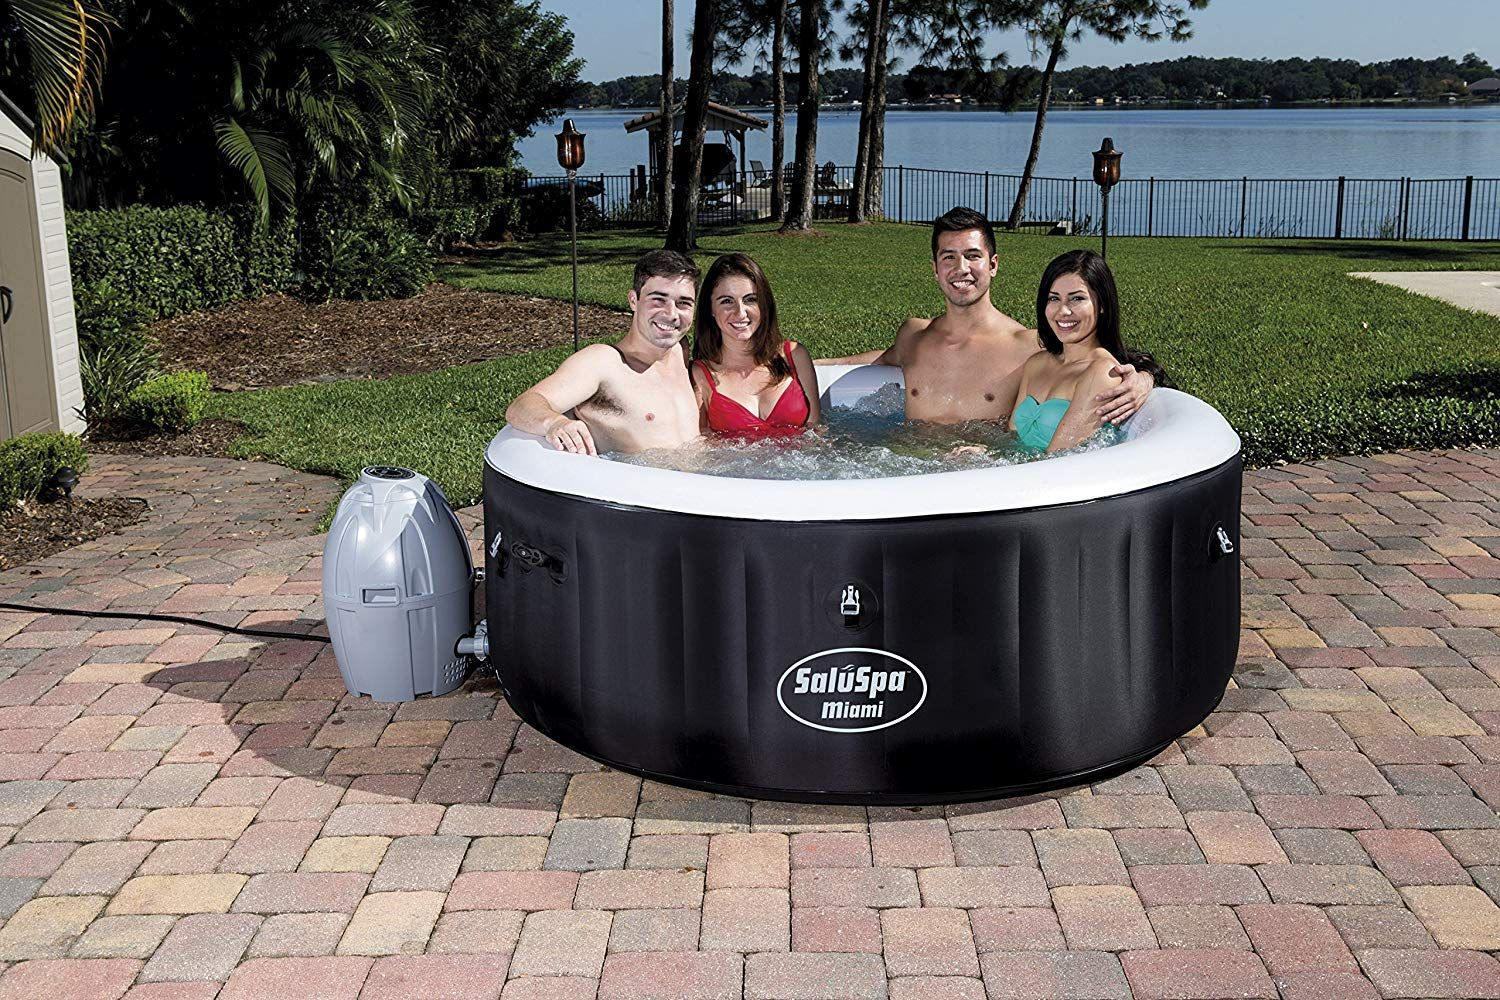 10 Best Inflatable Hot Tub Reviews In 2020 With Images Hot Tub Outdoor Inflatable Hot Tub Reviews Outdoor Spas Hot Tubs